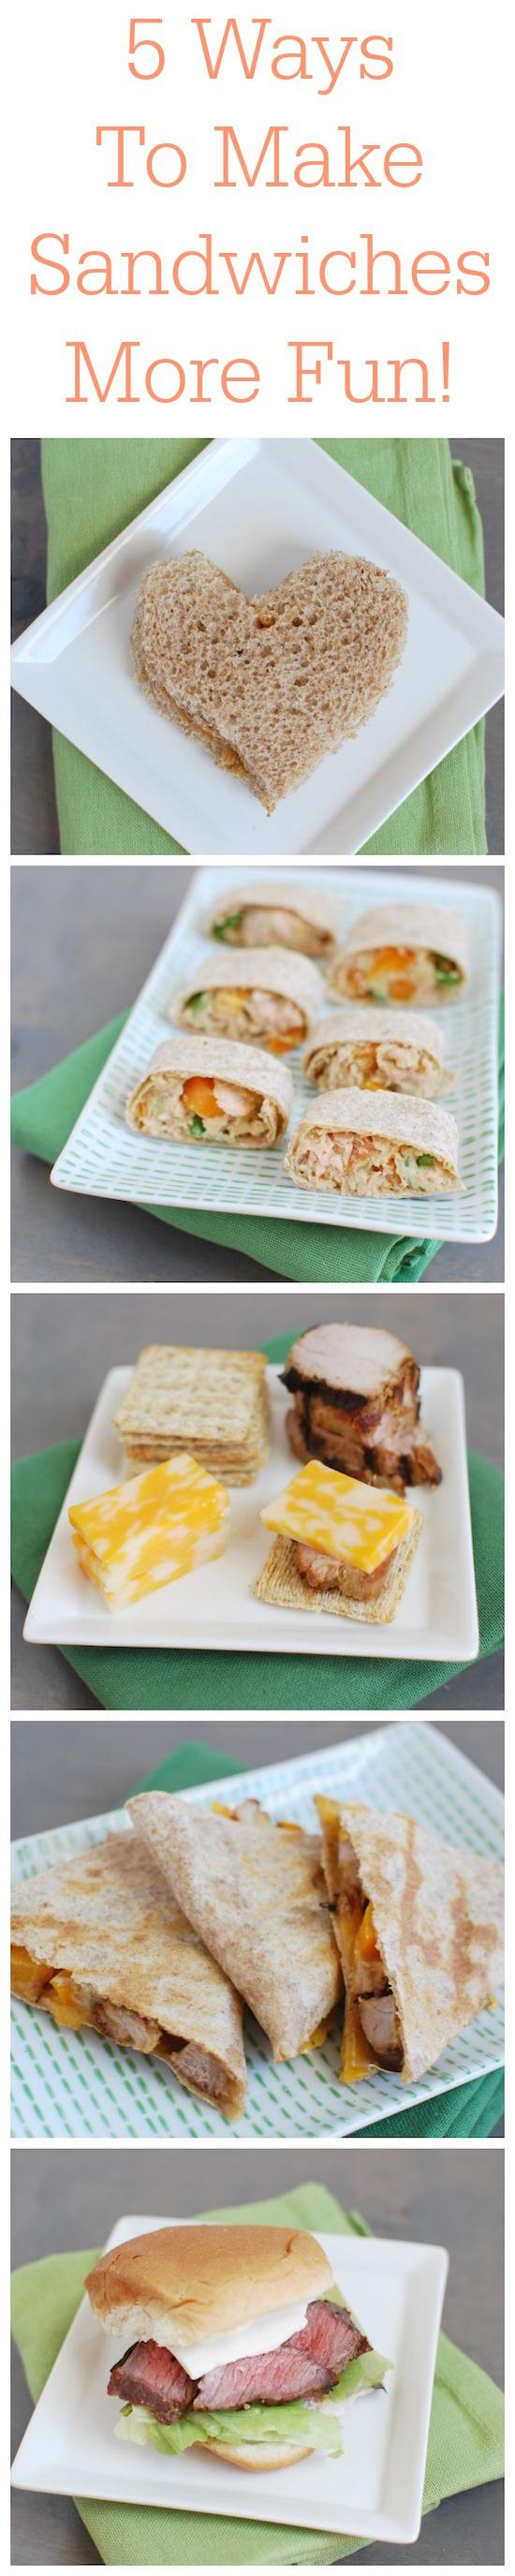 Tired of eating the same sandwich every day? Here are five creative ways to make sandwiches more fun to eat for lunch. Perfect for kids and adults.